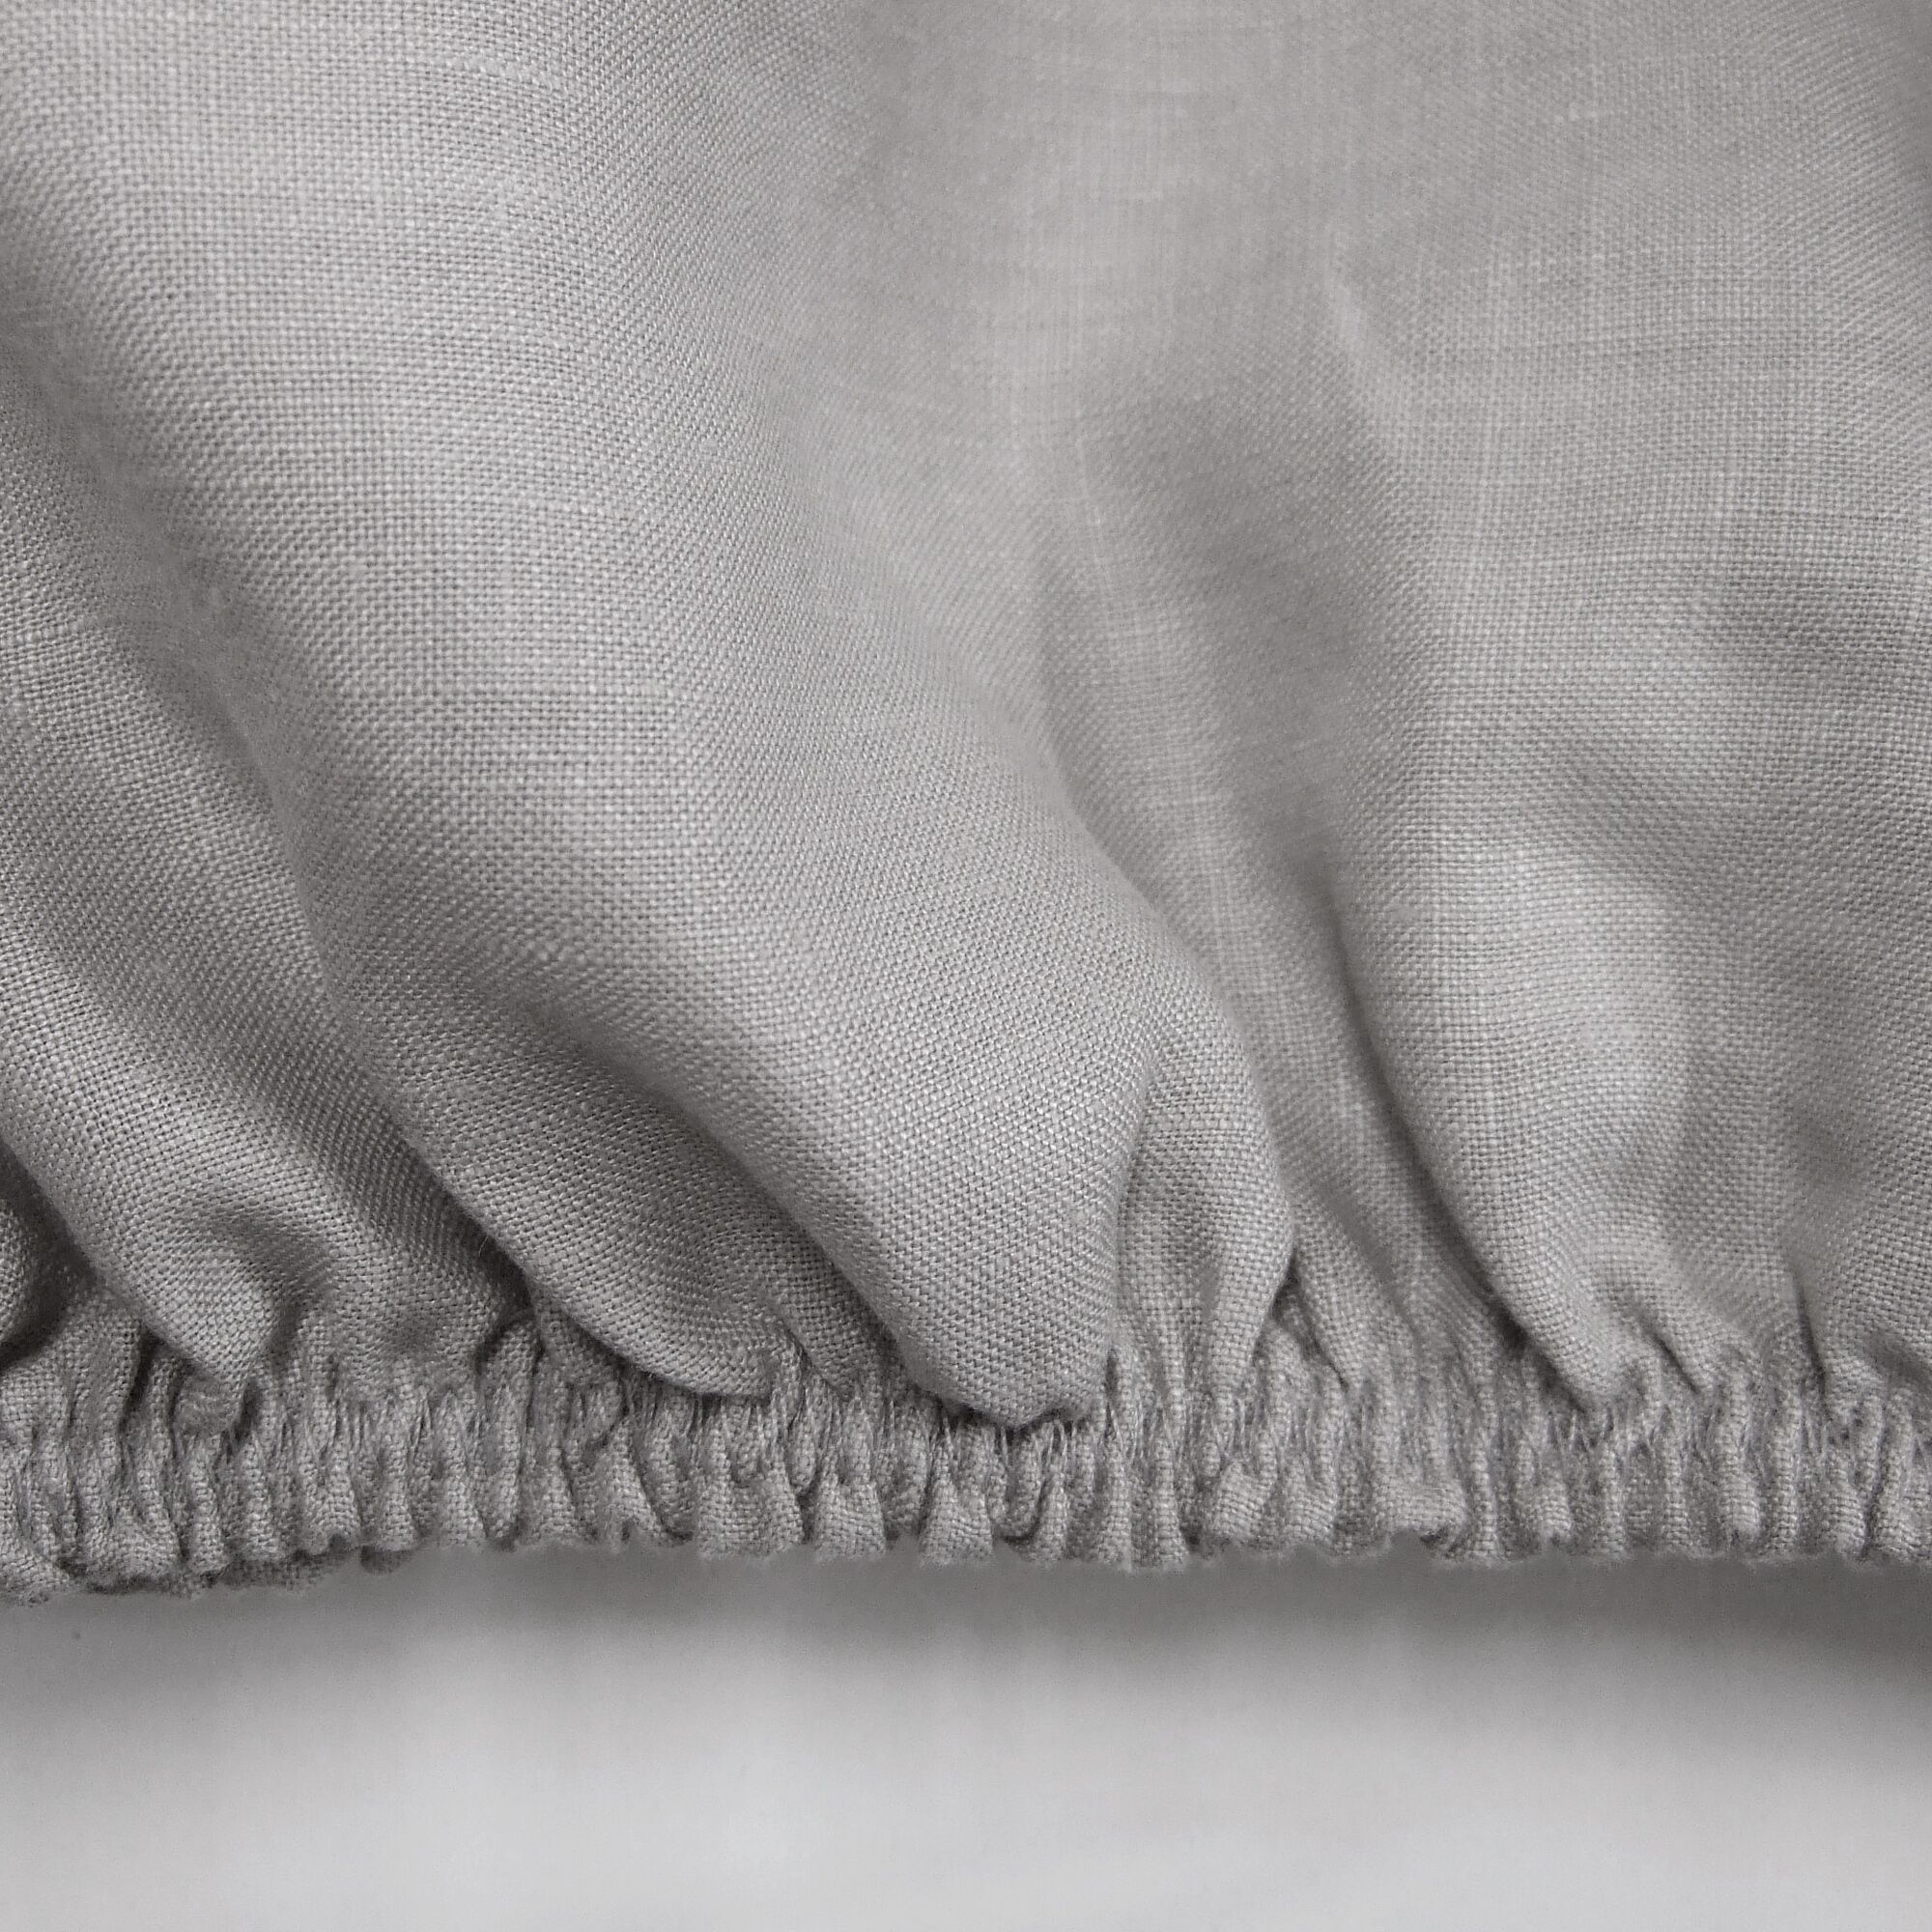 Linen Fitted Sheet Size: Twin, Color: Warm Gray